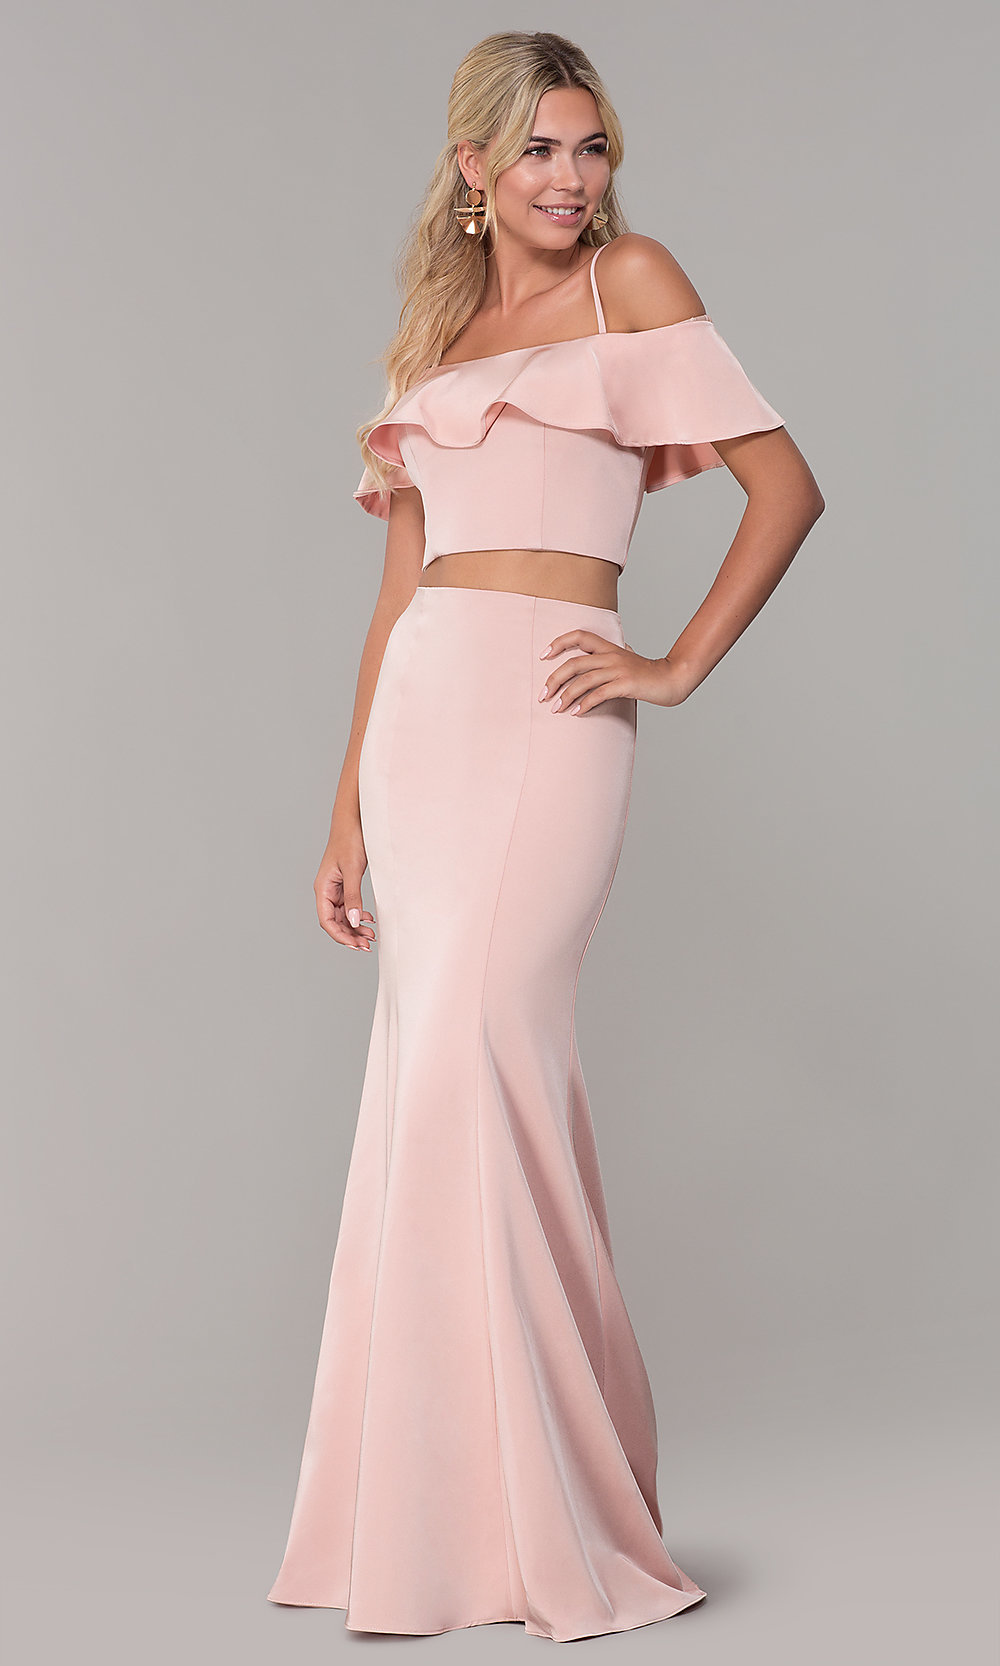 1253bd5ccd2 Image of off-the-shoulder two-piece prom dress with ruffle. Style. Tap to  expand